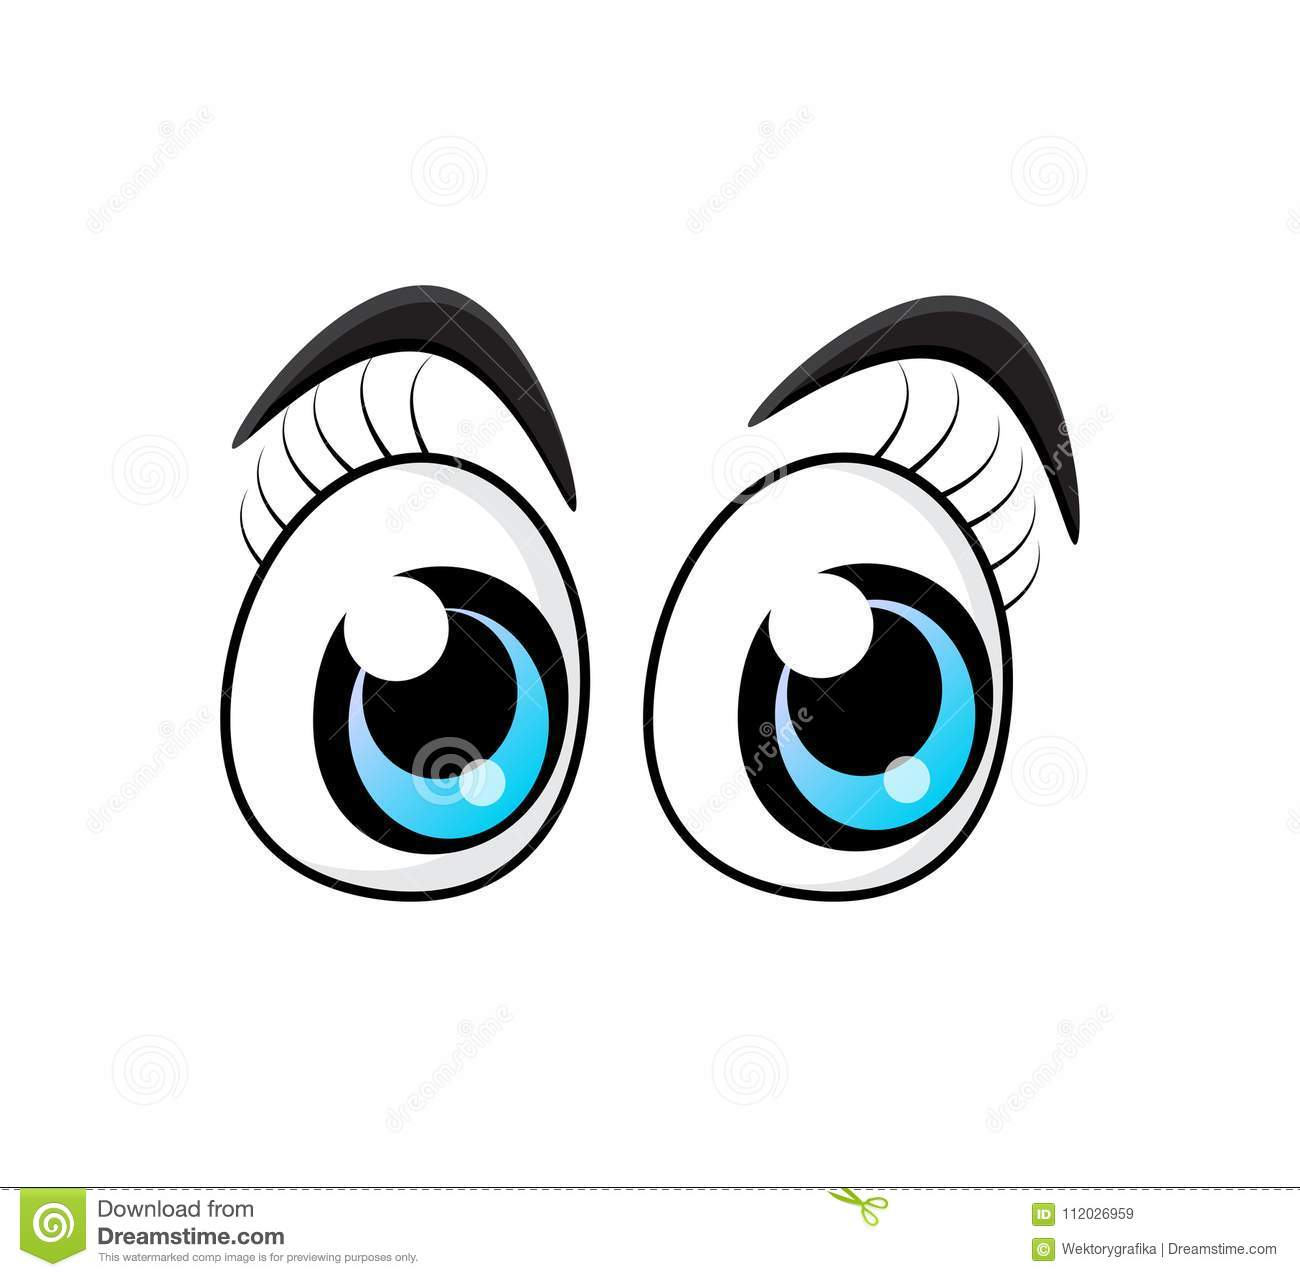 d3a60320cab Blue cartoon character eyes with eyelashes isolated on white background